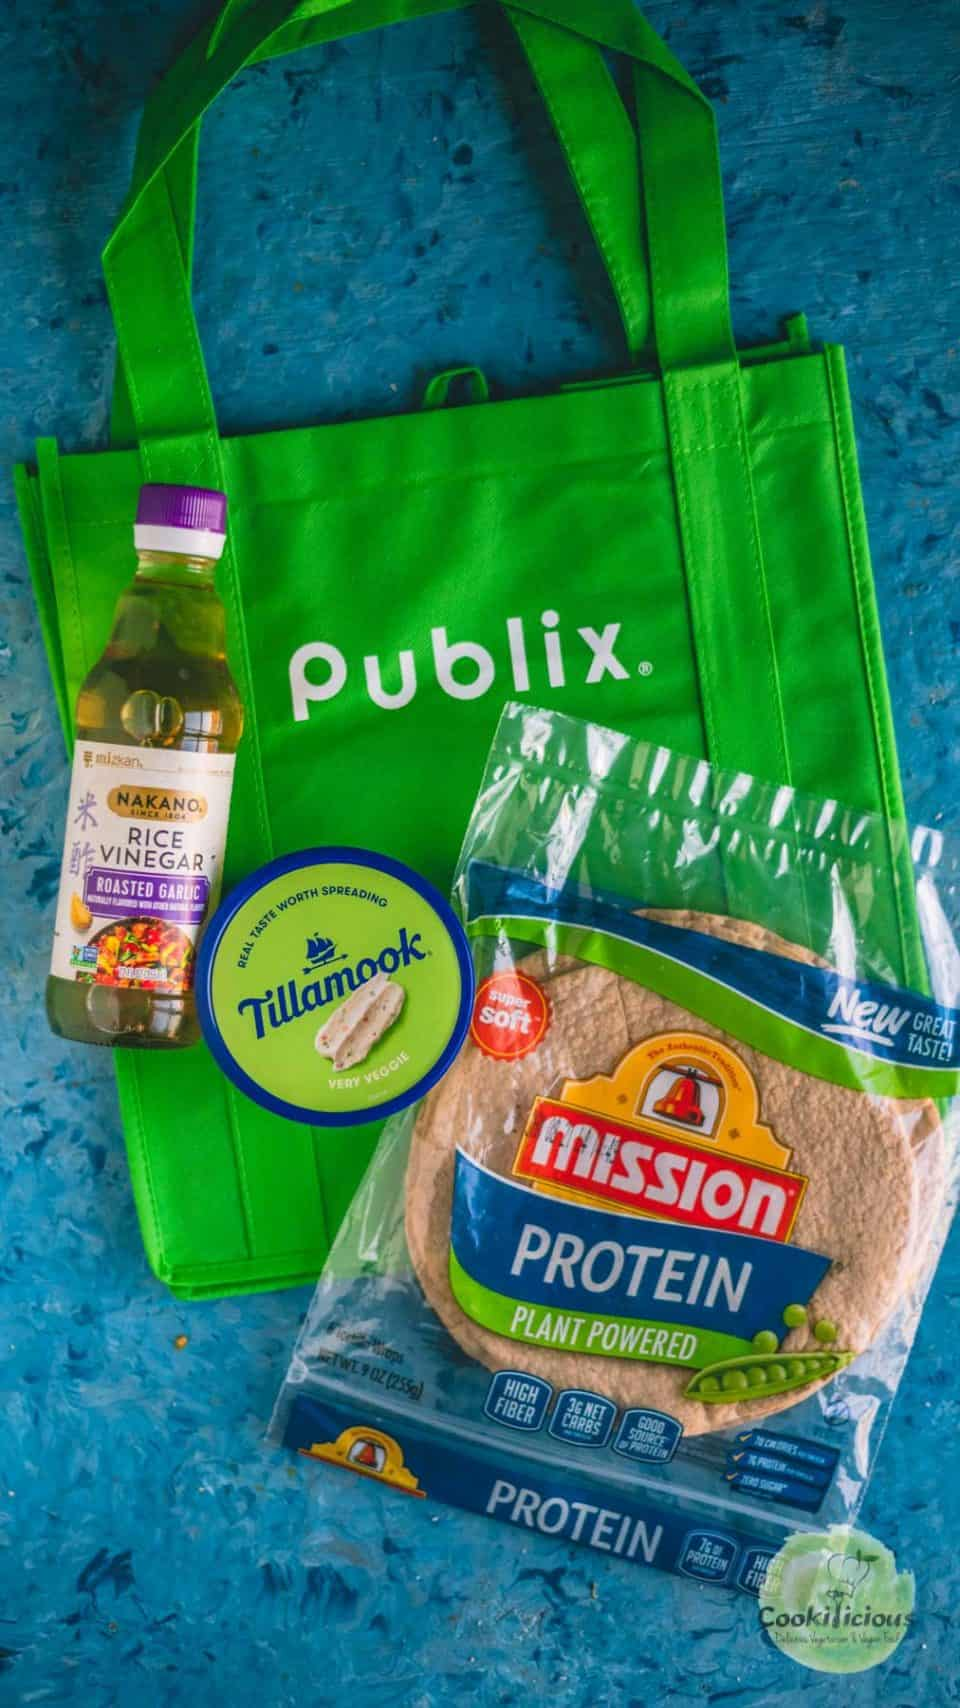 a Publix shopping bag with a packet of tortillas, rice vinegar and cream cheese spread around it